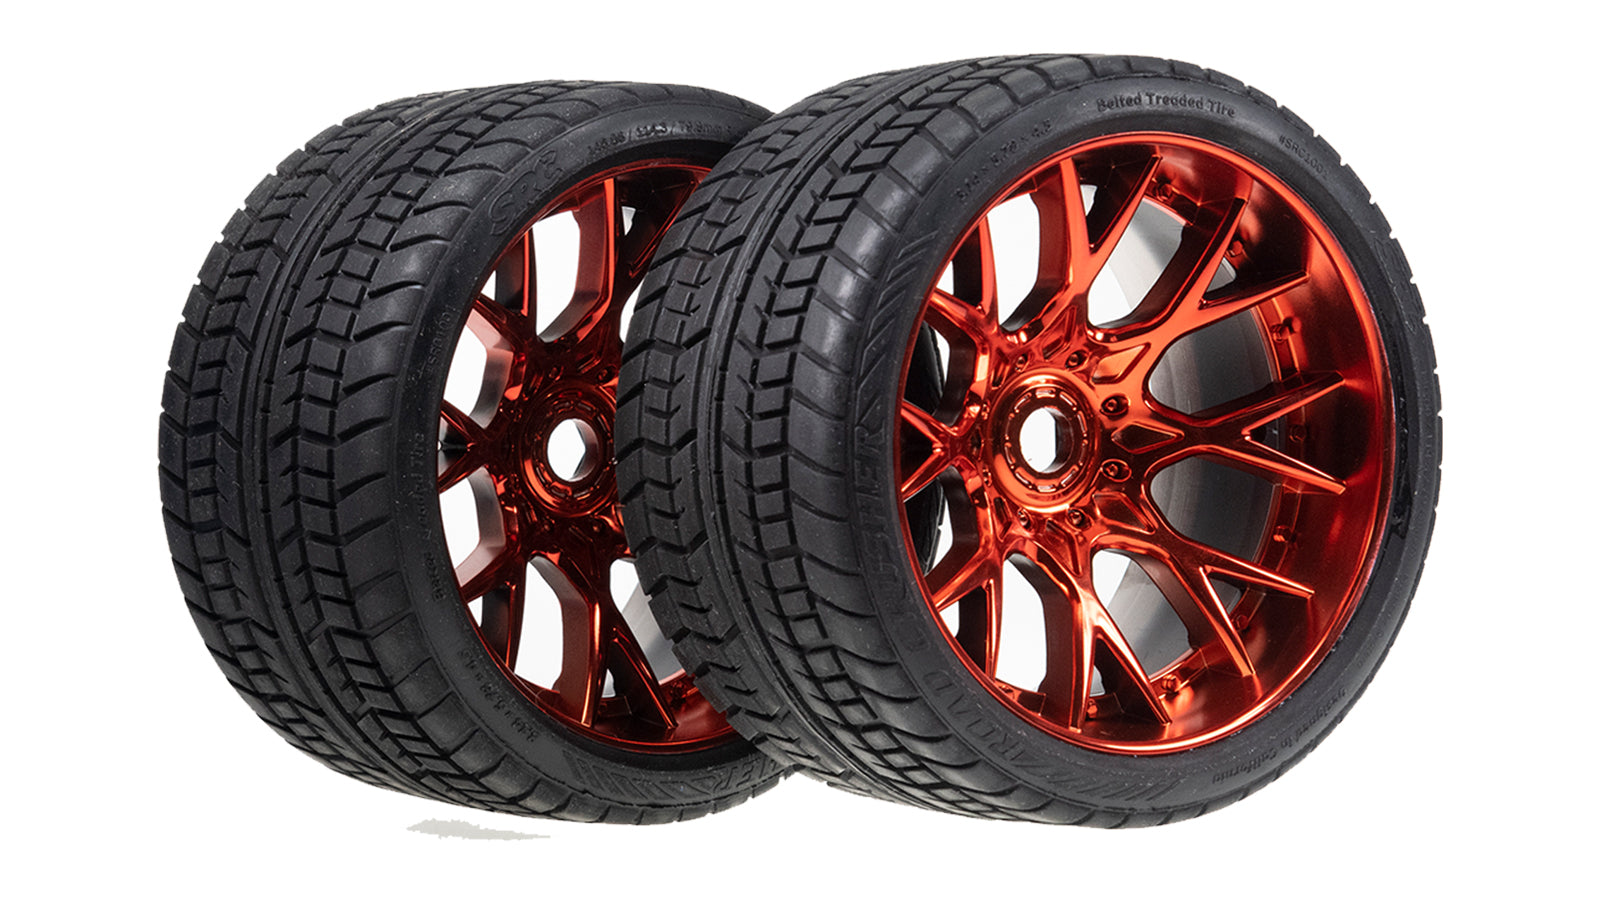 Sweep Racing Road Crusher On Road Belted Red Chrome Monster Truck Rubber Tires (2) SWSRC1001R